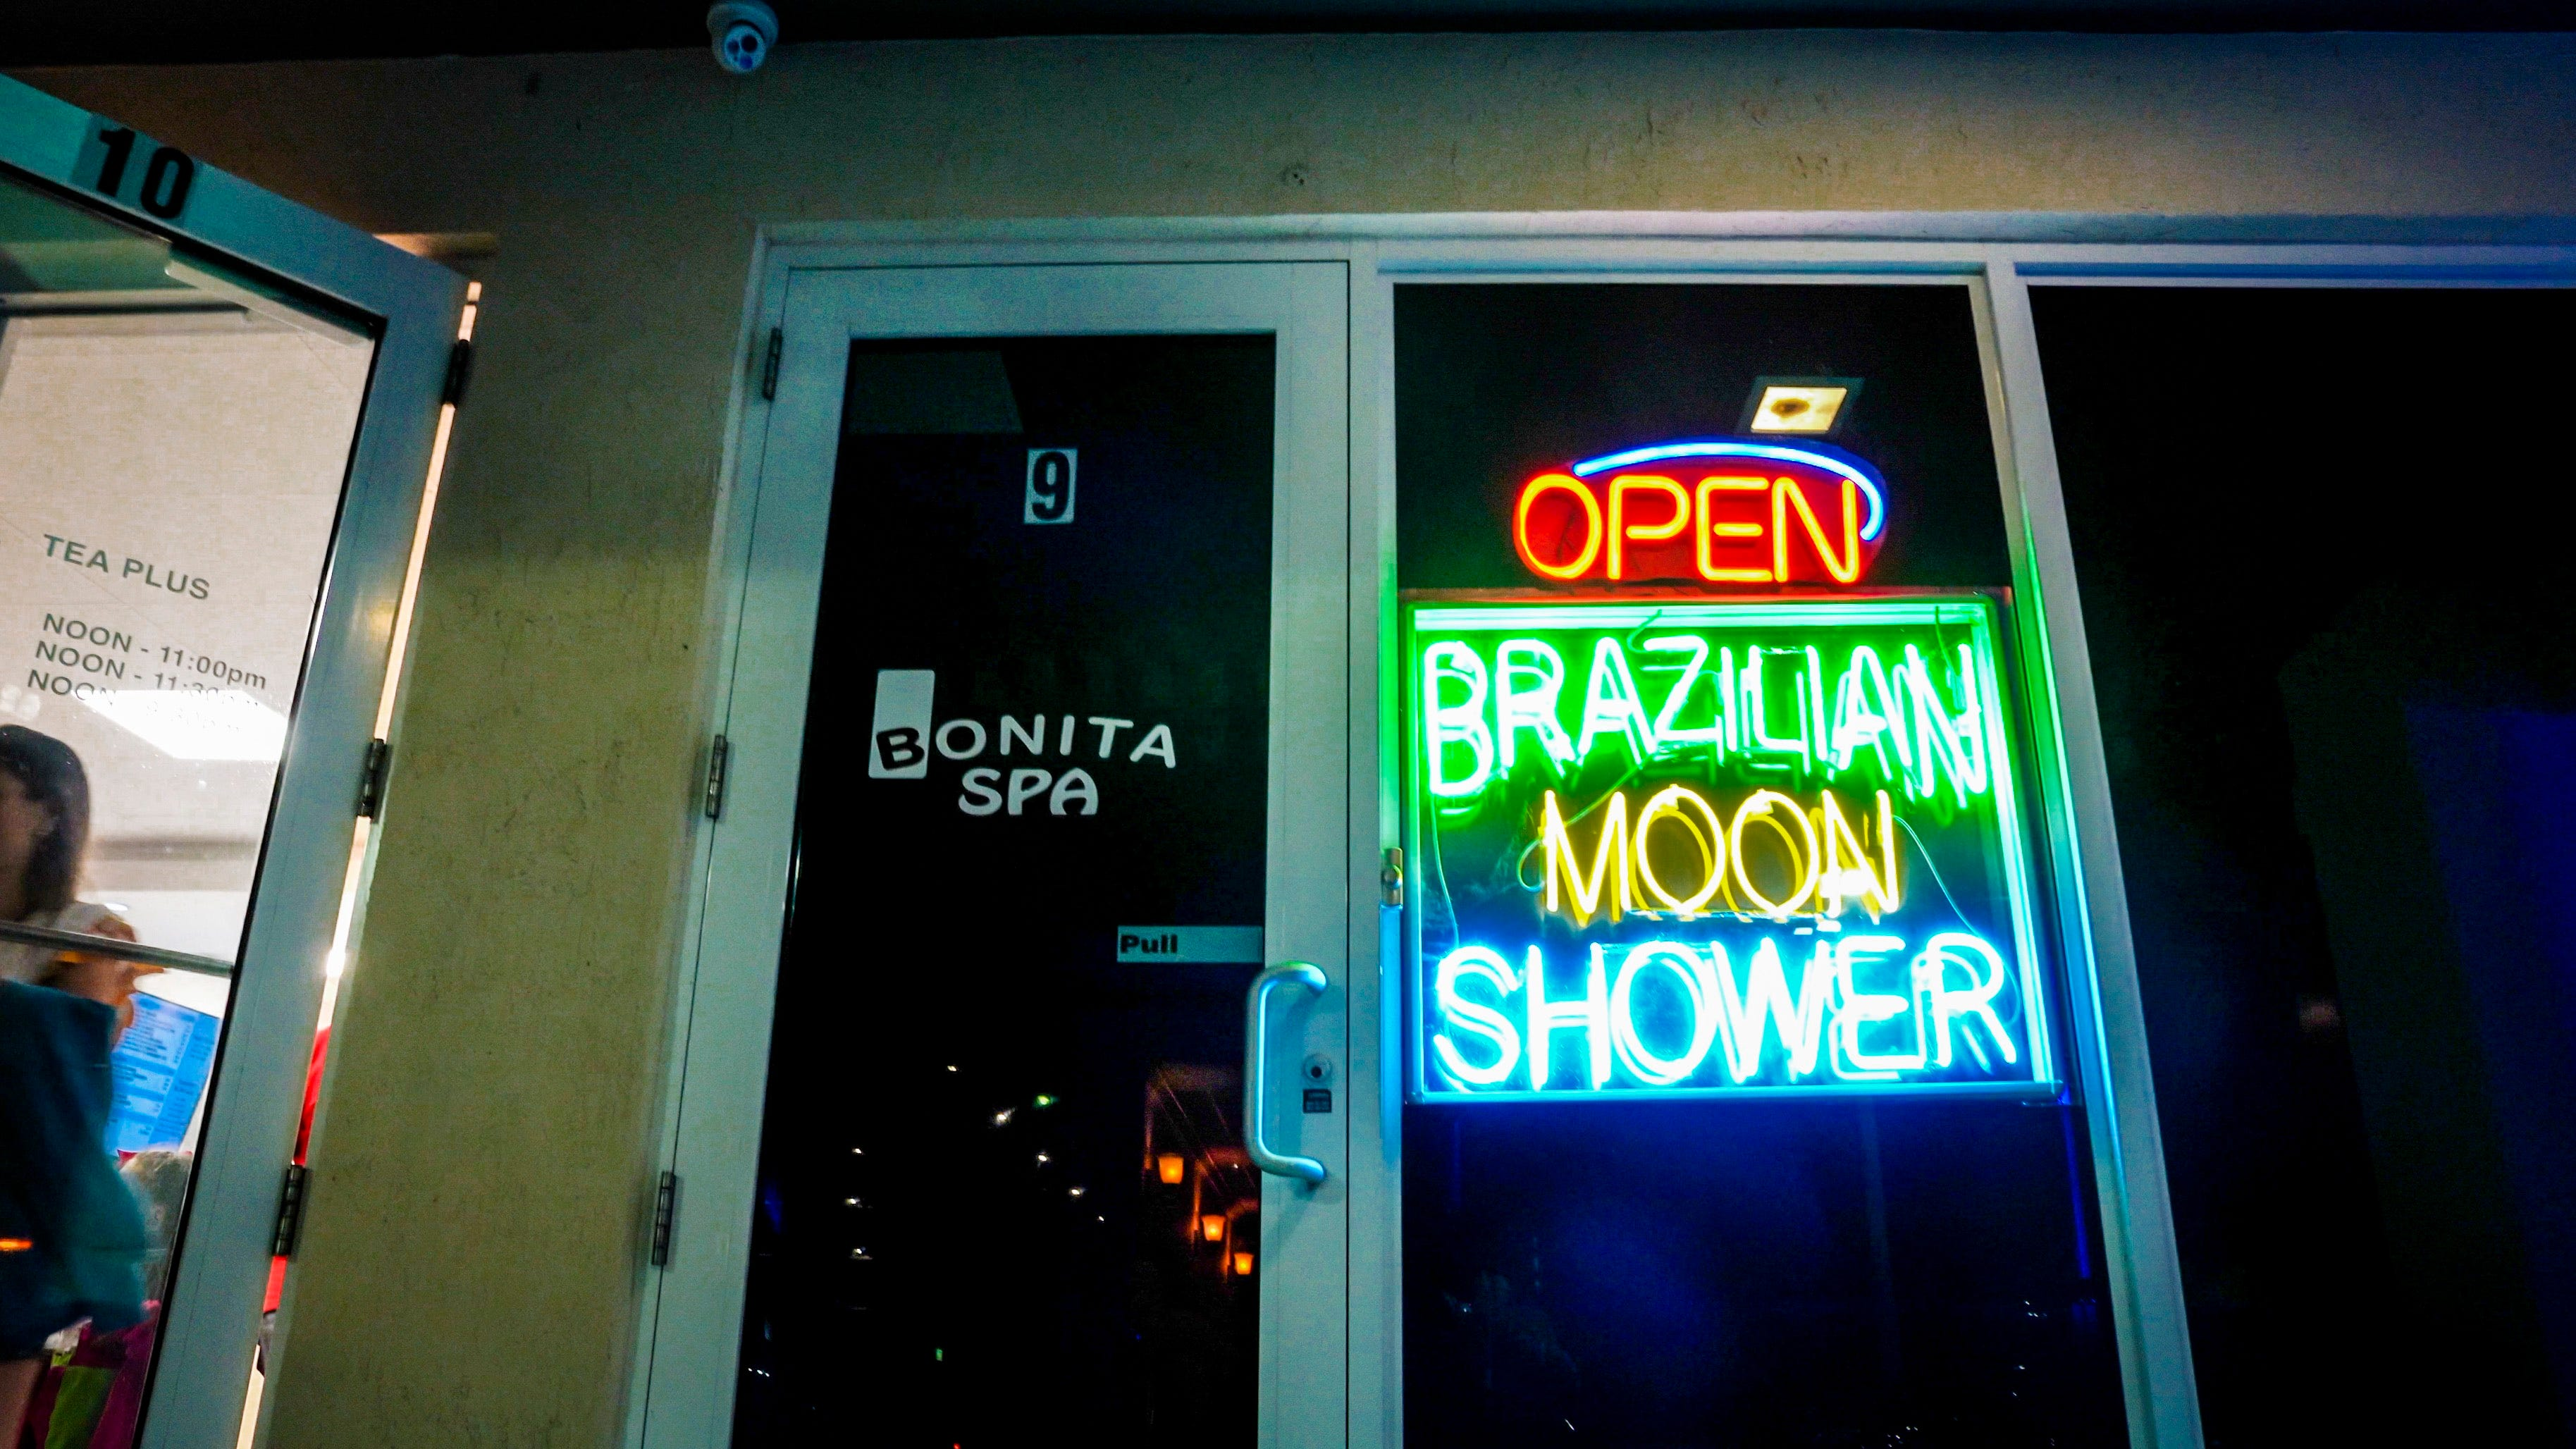 Hollywood police raided Bonita Spa in 2016 and 2017 as part of Operation Red Light, and two women pleaded no contest to charges related to prostitution. The spa remained open when reporters visited this spring.